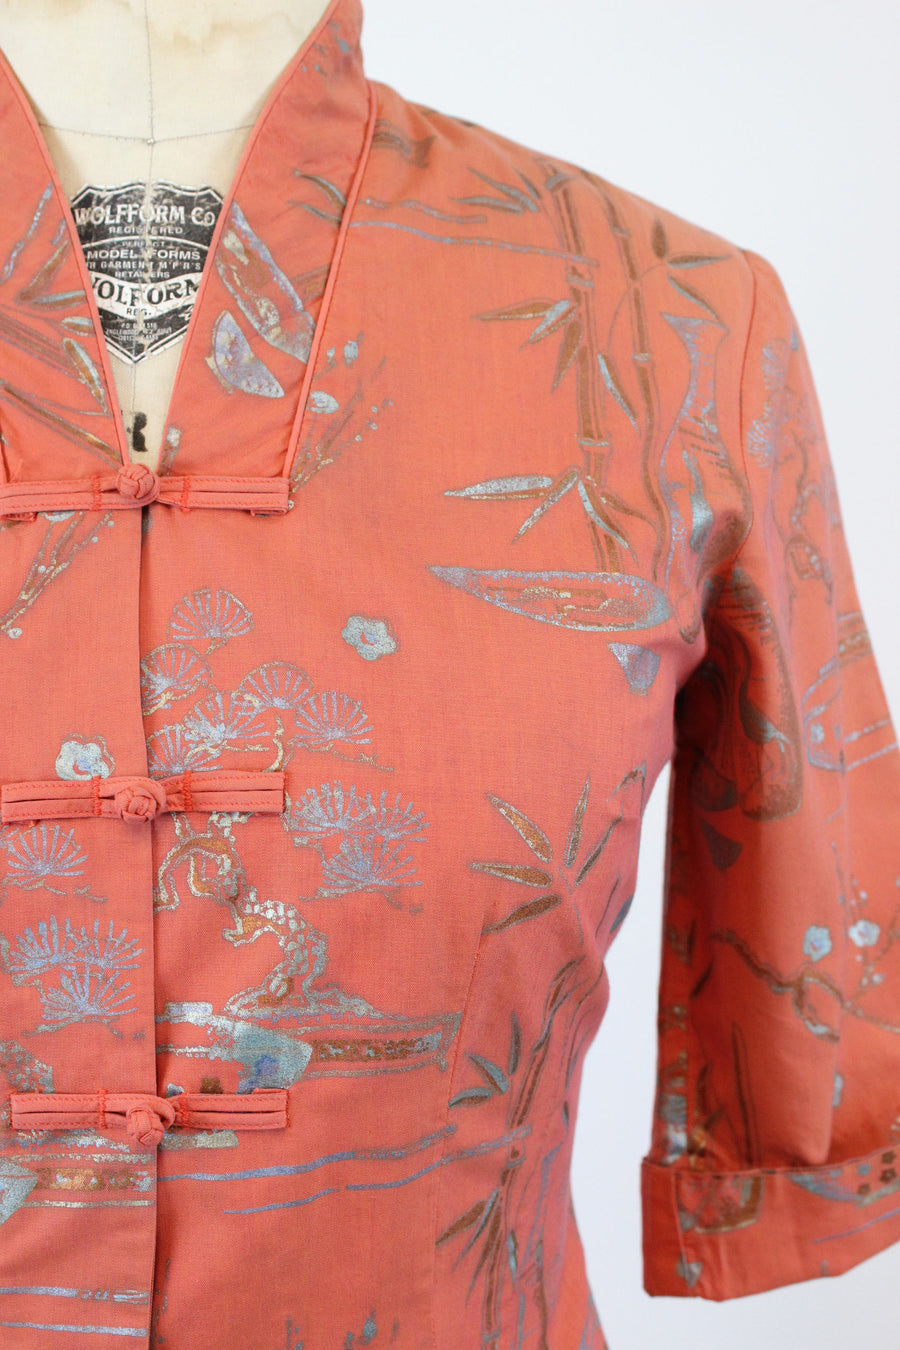 1950s Alfred Shaheen bamboo crane tunic medium | vintage cotton metallic jacket